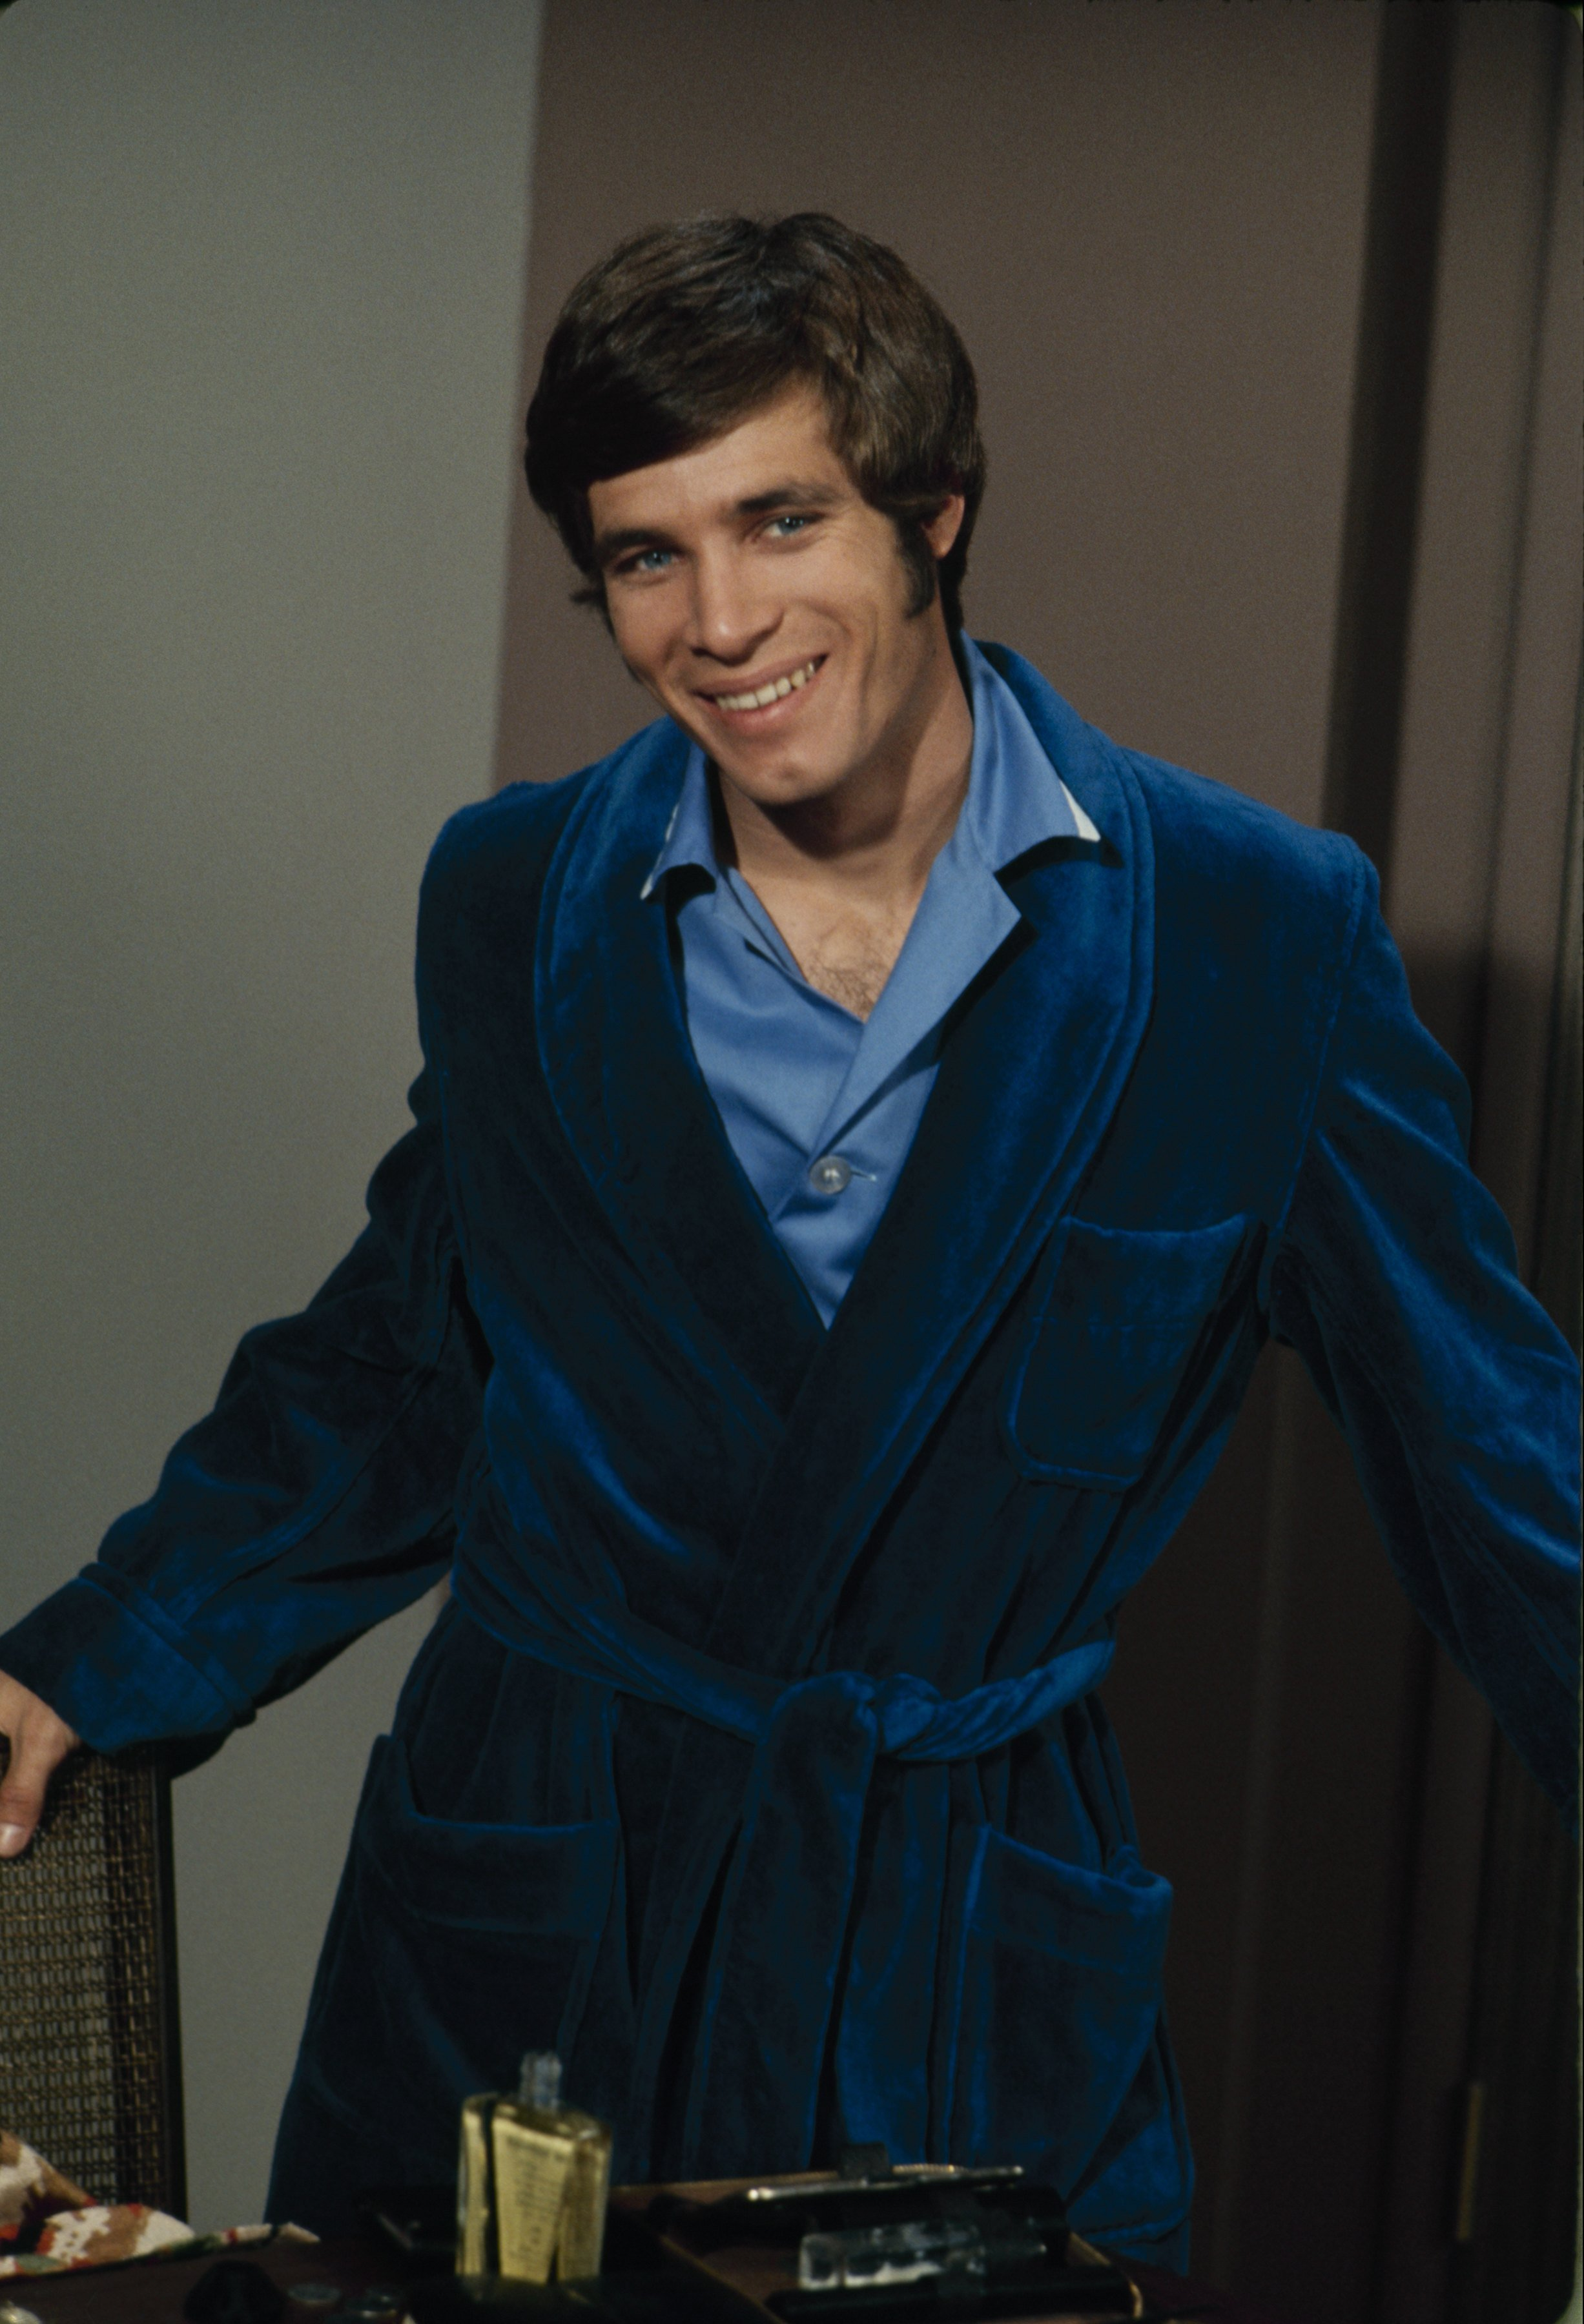 """Don Grady is photographed by Walt Disney Television while filming """"Love and the Co-ed Dorm"""" in February 1970 